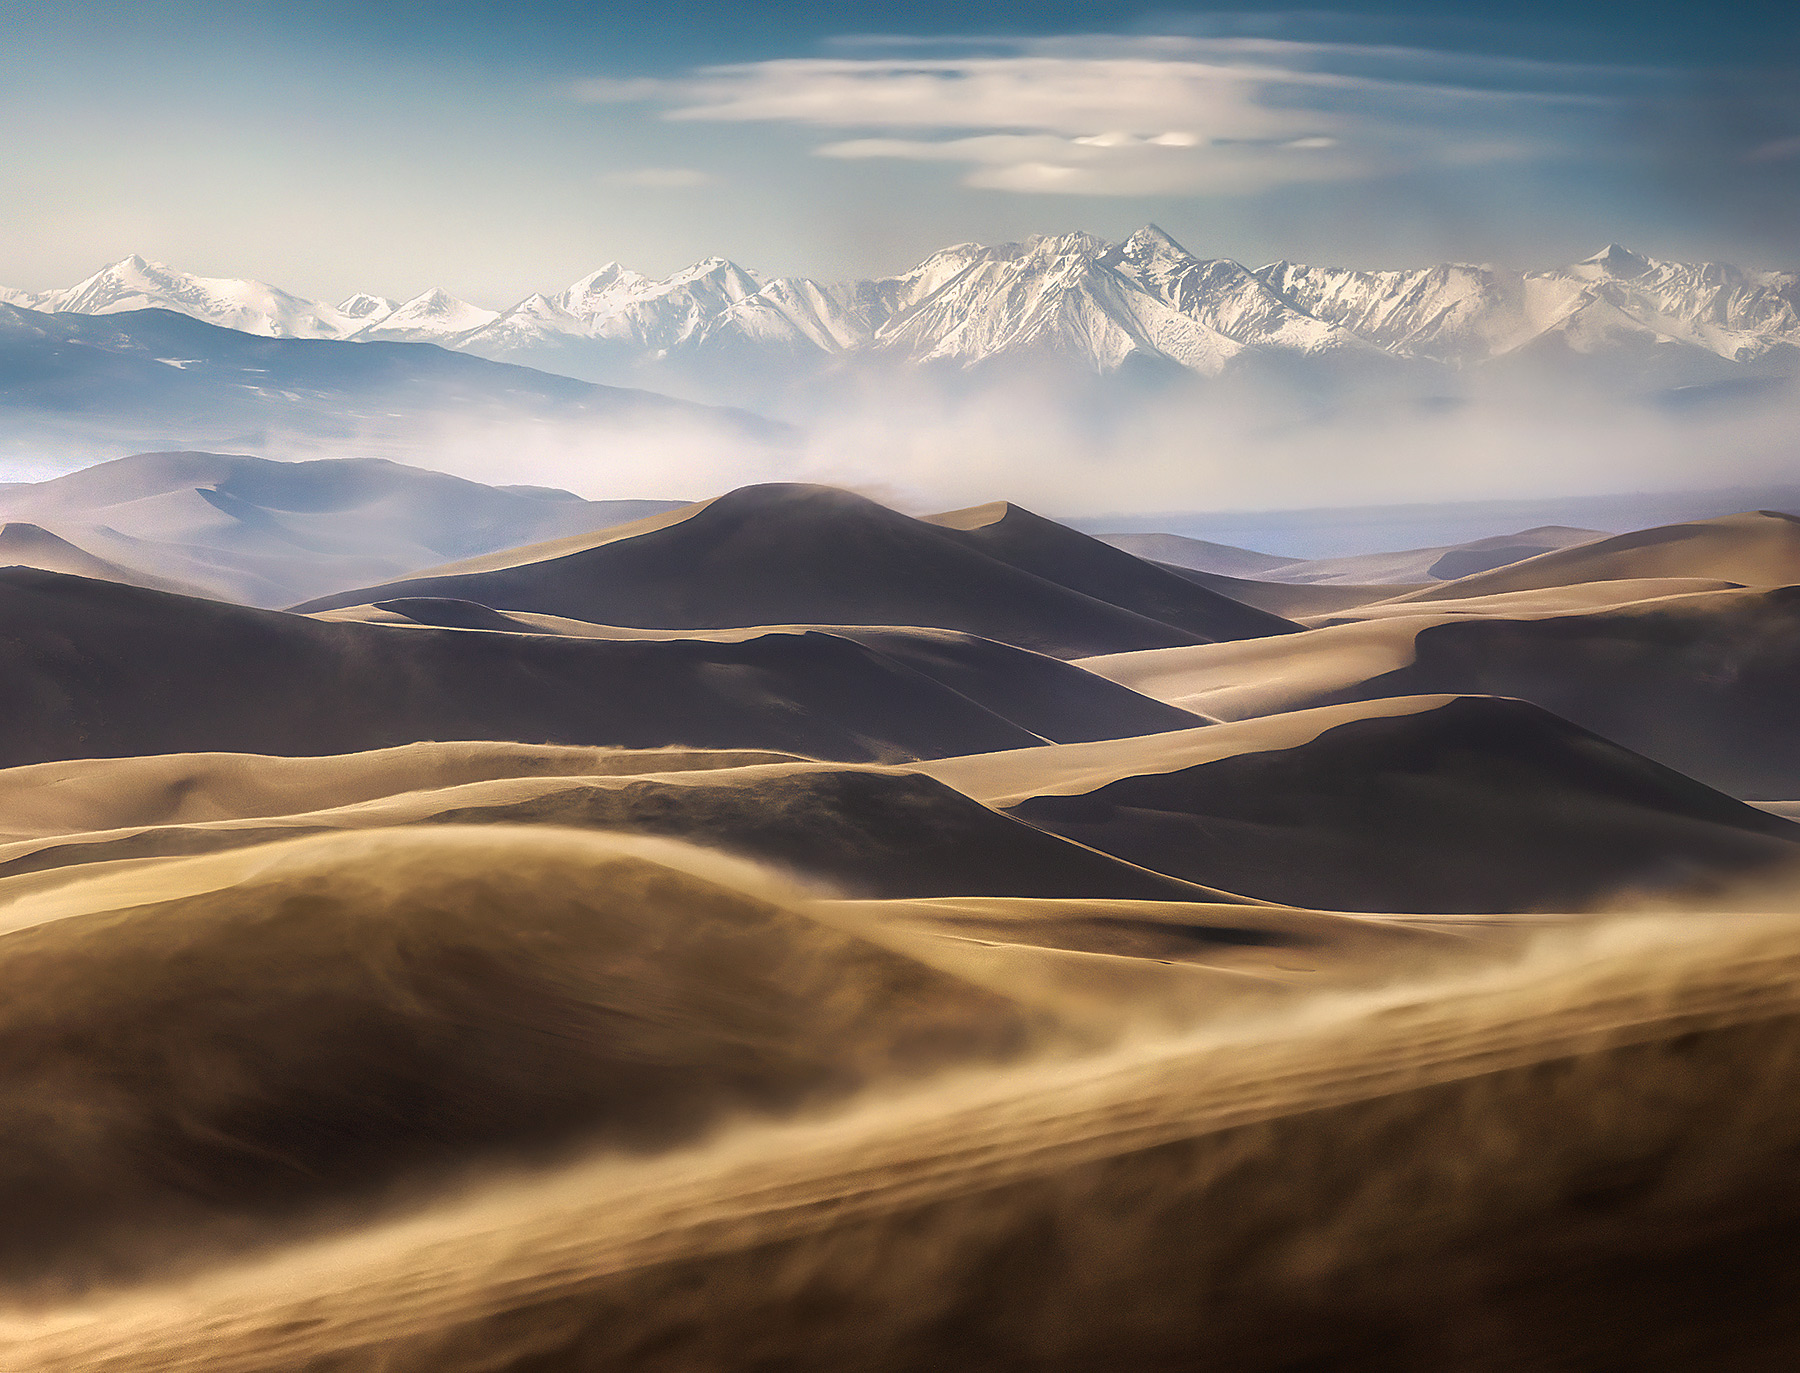 Telephoto layers of dunes and distant mountains amidst blowing sands in Colorado